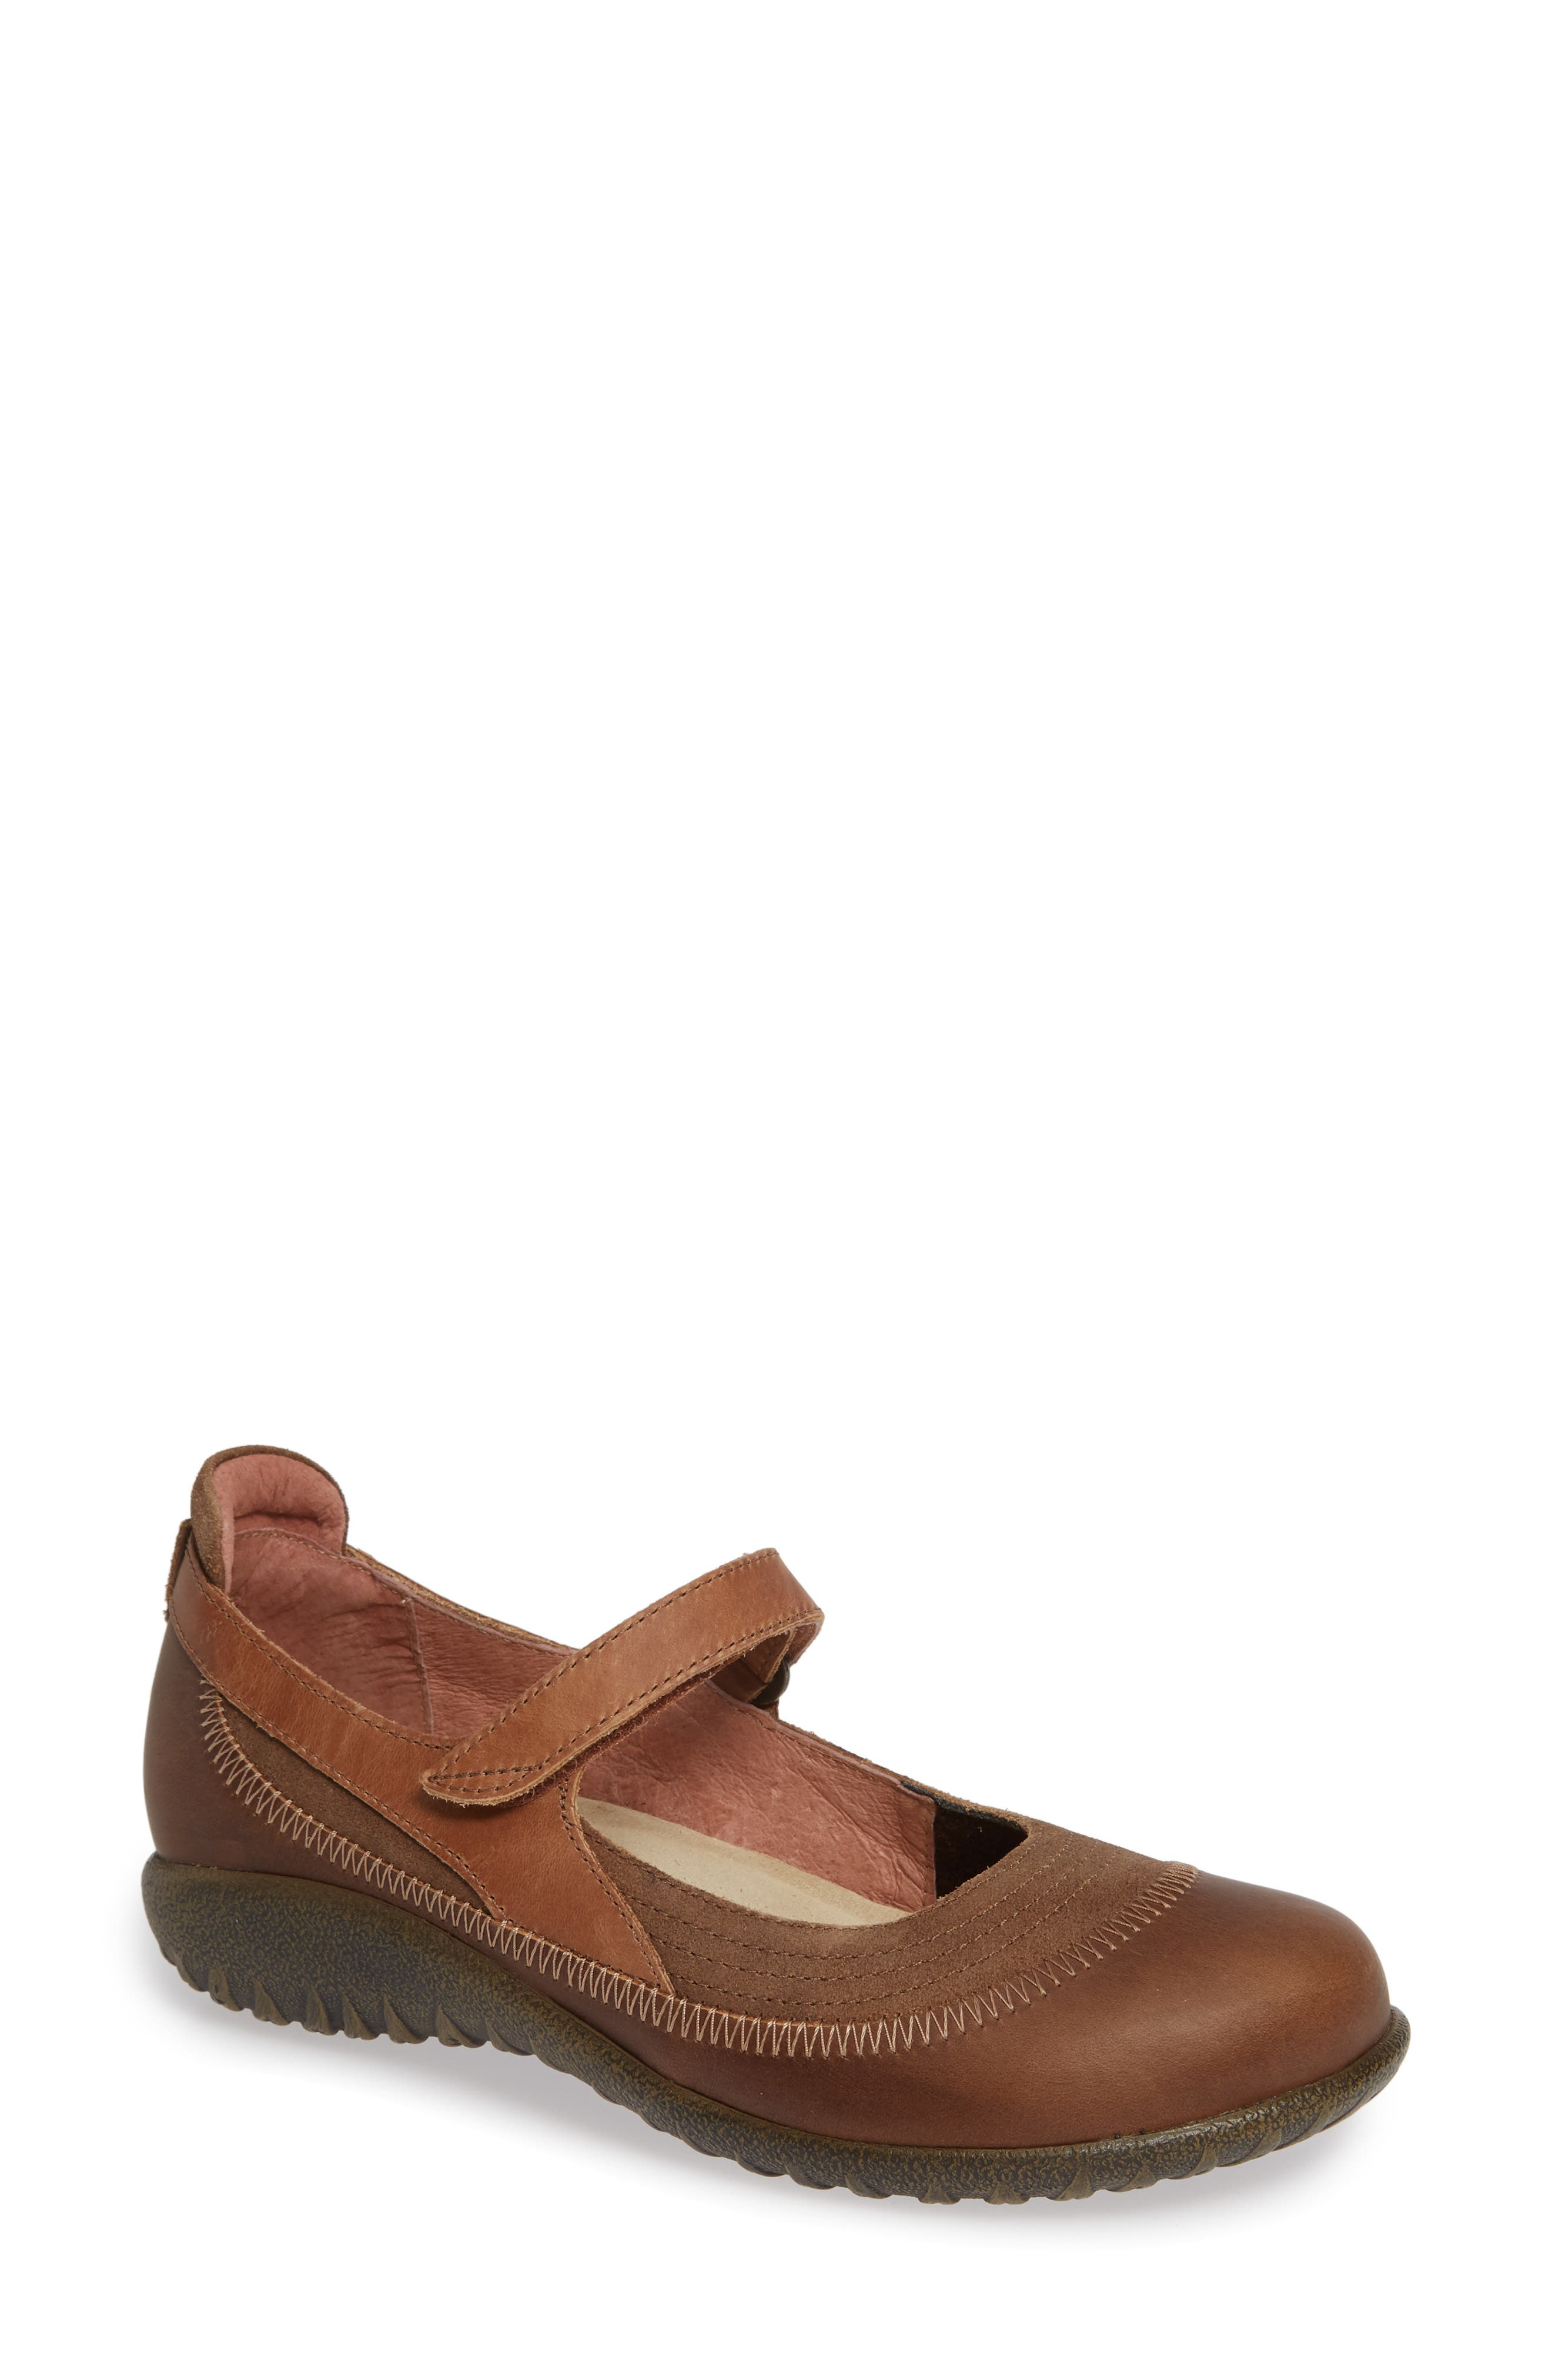 'Kirei' Mary Jane,                         Main,                         color, Antique/ Saddle Leather/ Suede